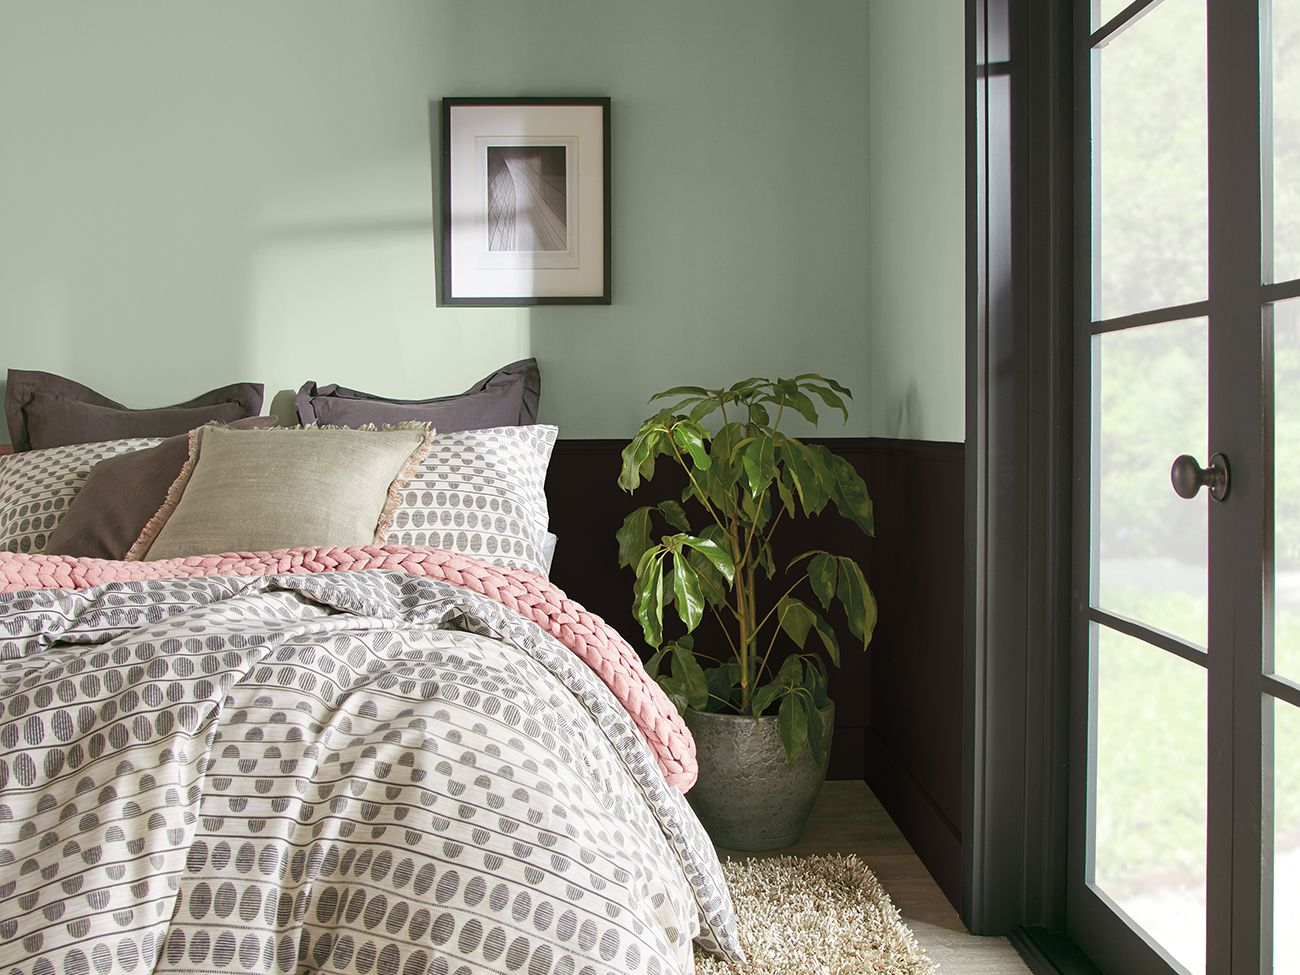 These Are The 2021 Interior Color Trends According To Behr